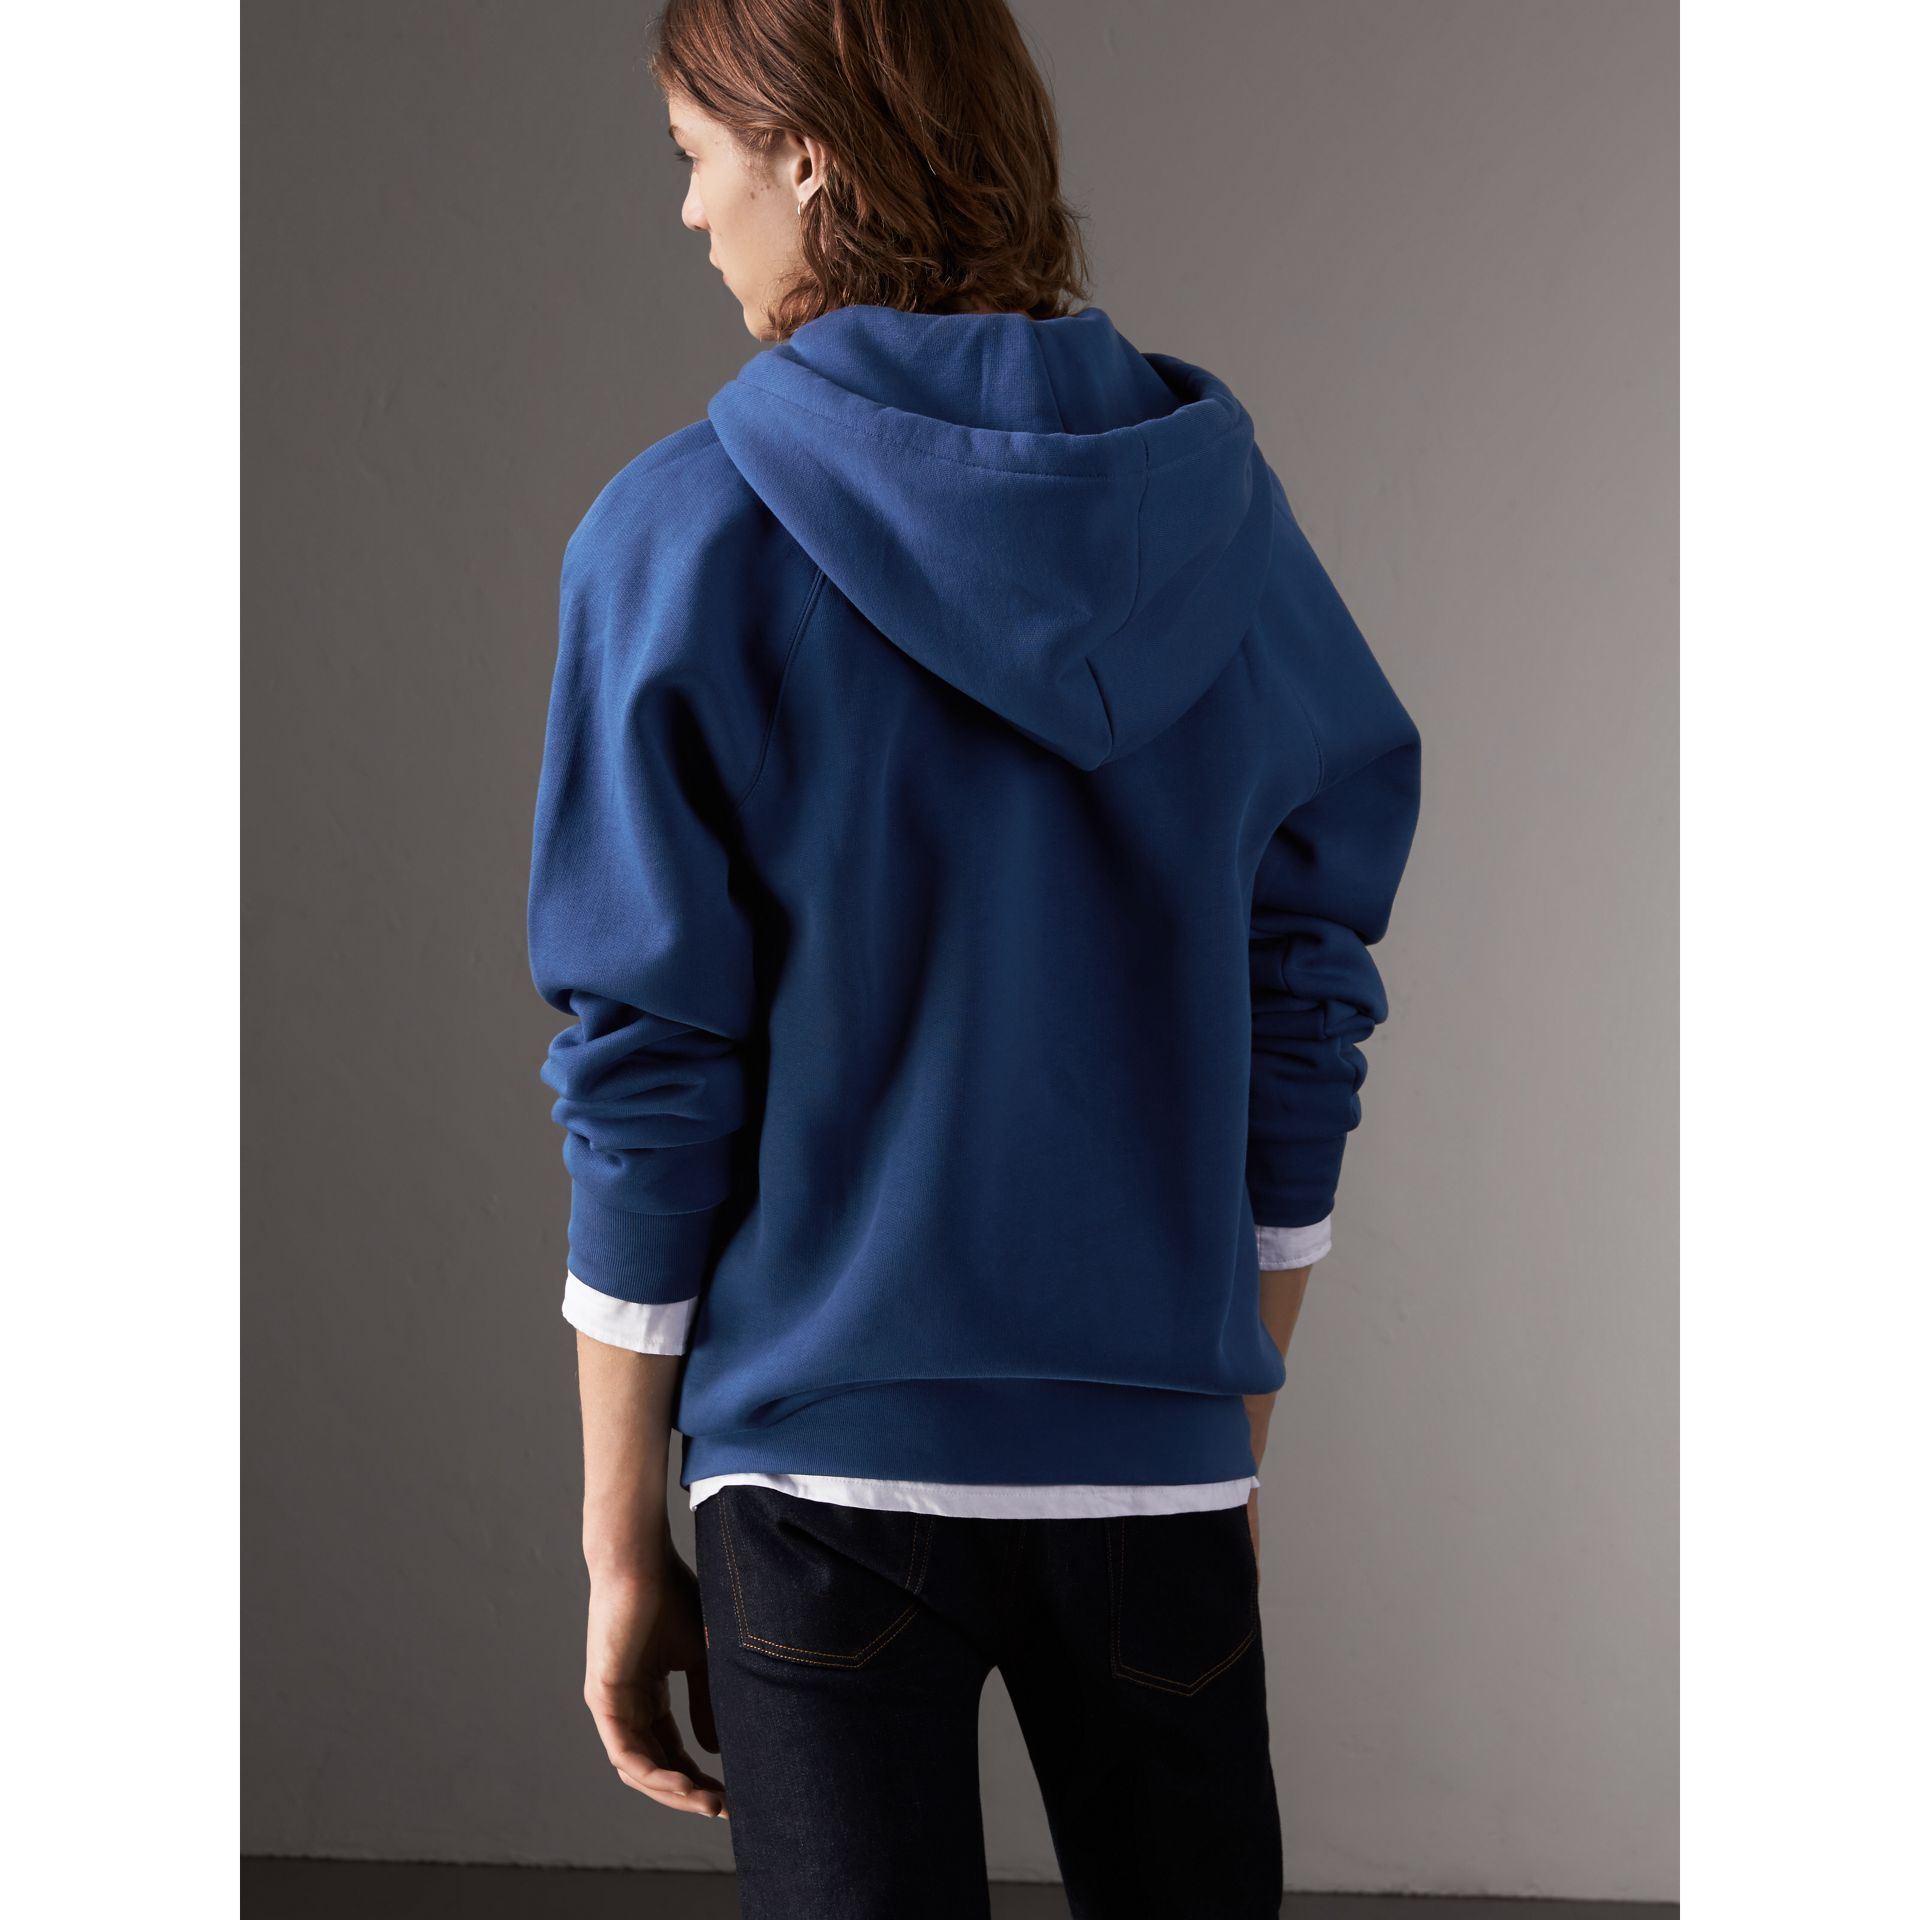 Embroidered Hooded Sweatshirt in Bright Blue - Men | Burberry - gallery image 3